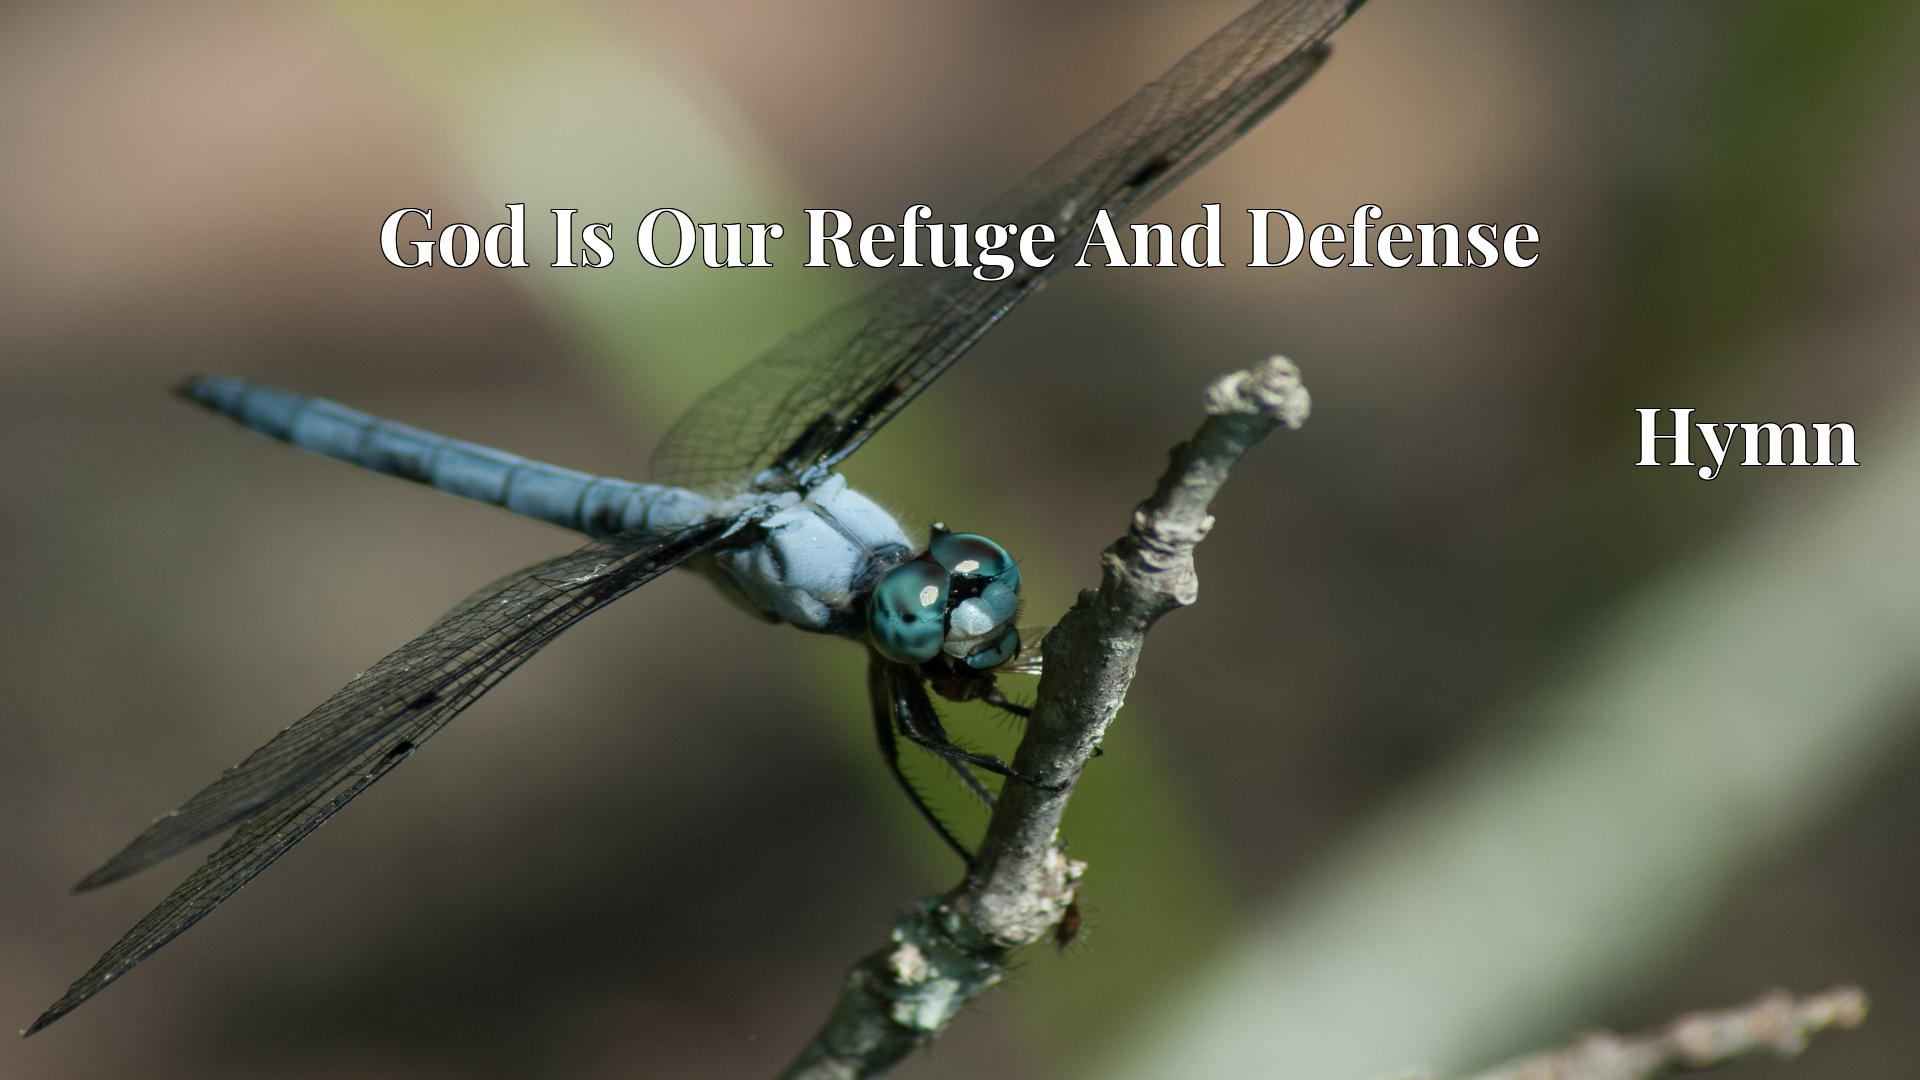 God Is Our Refuge And Defense - Hymn